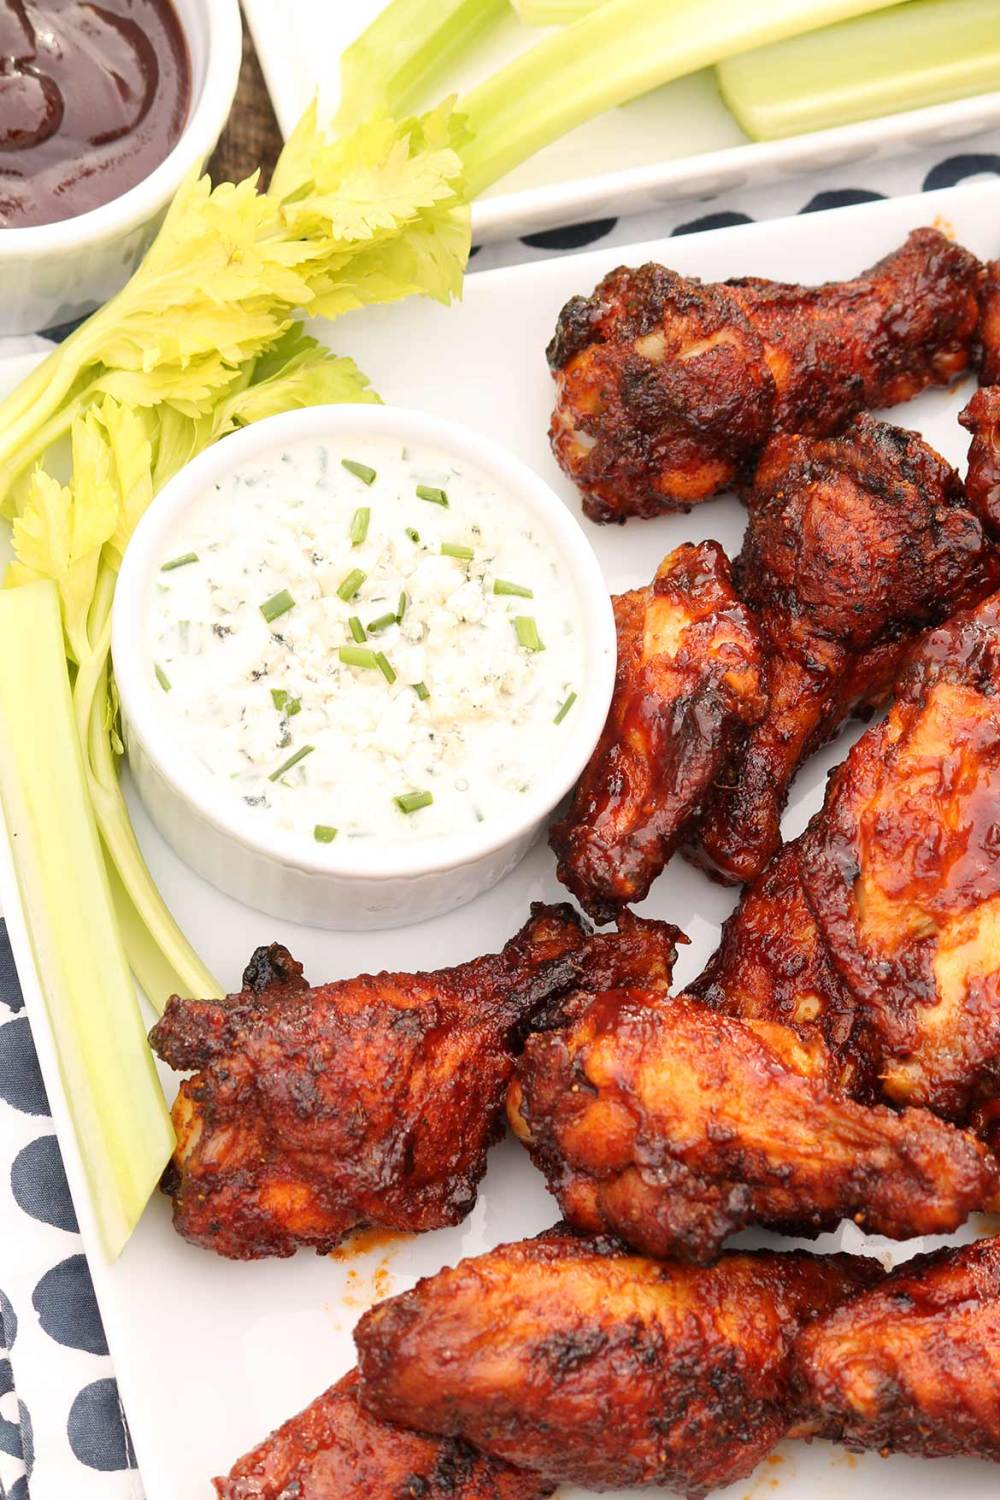 These rival your favorite restaurant wings and the simple trick guarantees extra crispy skin! (Baked, not fried)